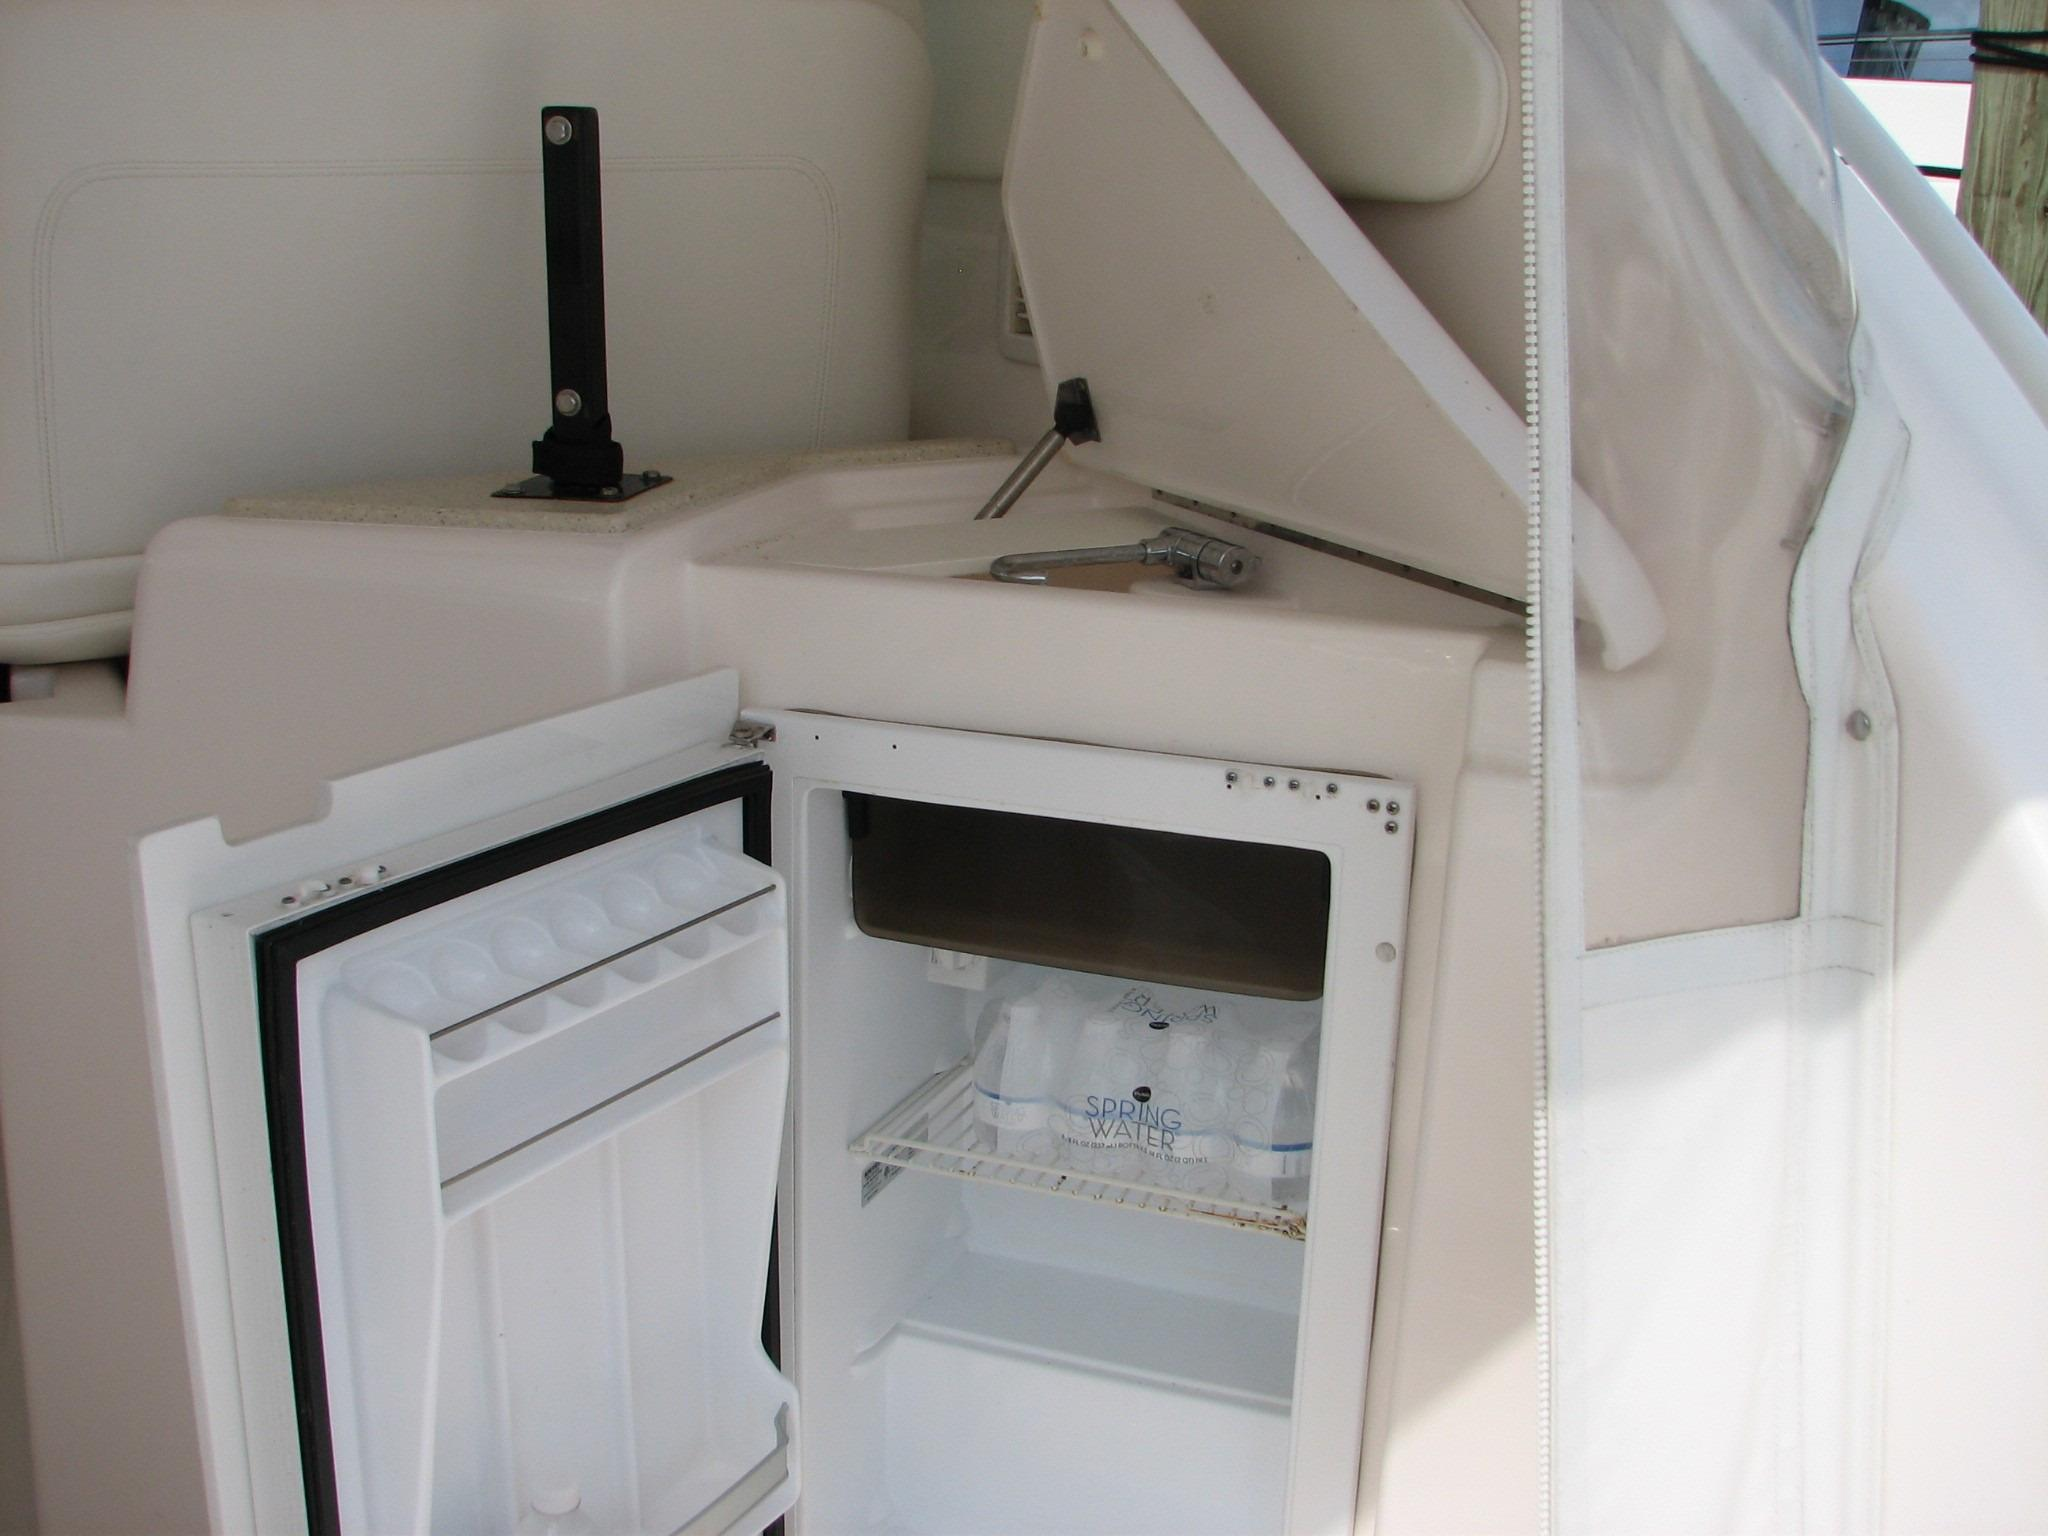 Helm Area Refrigerator and Sink